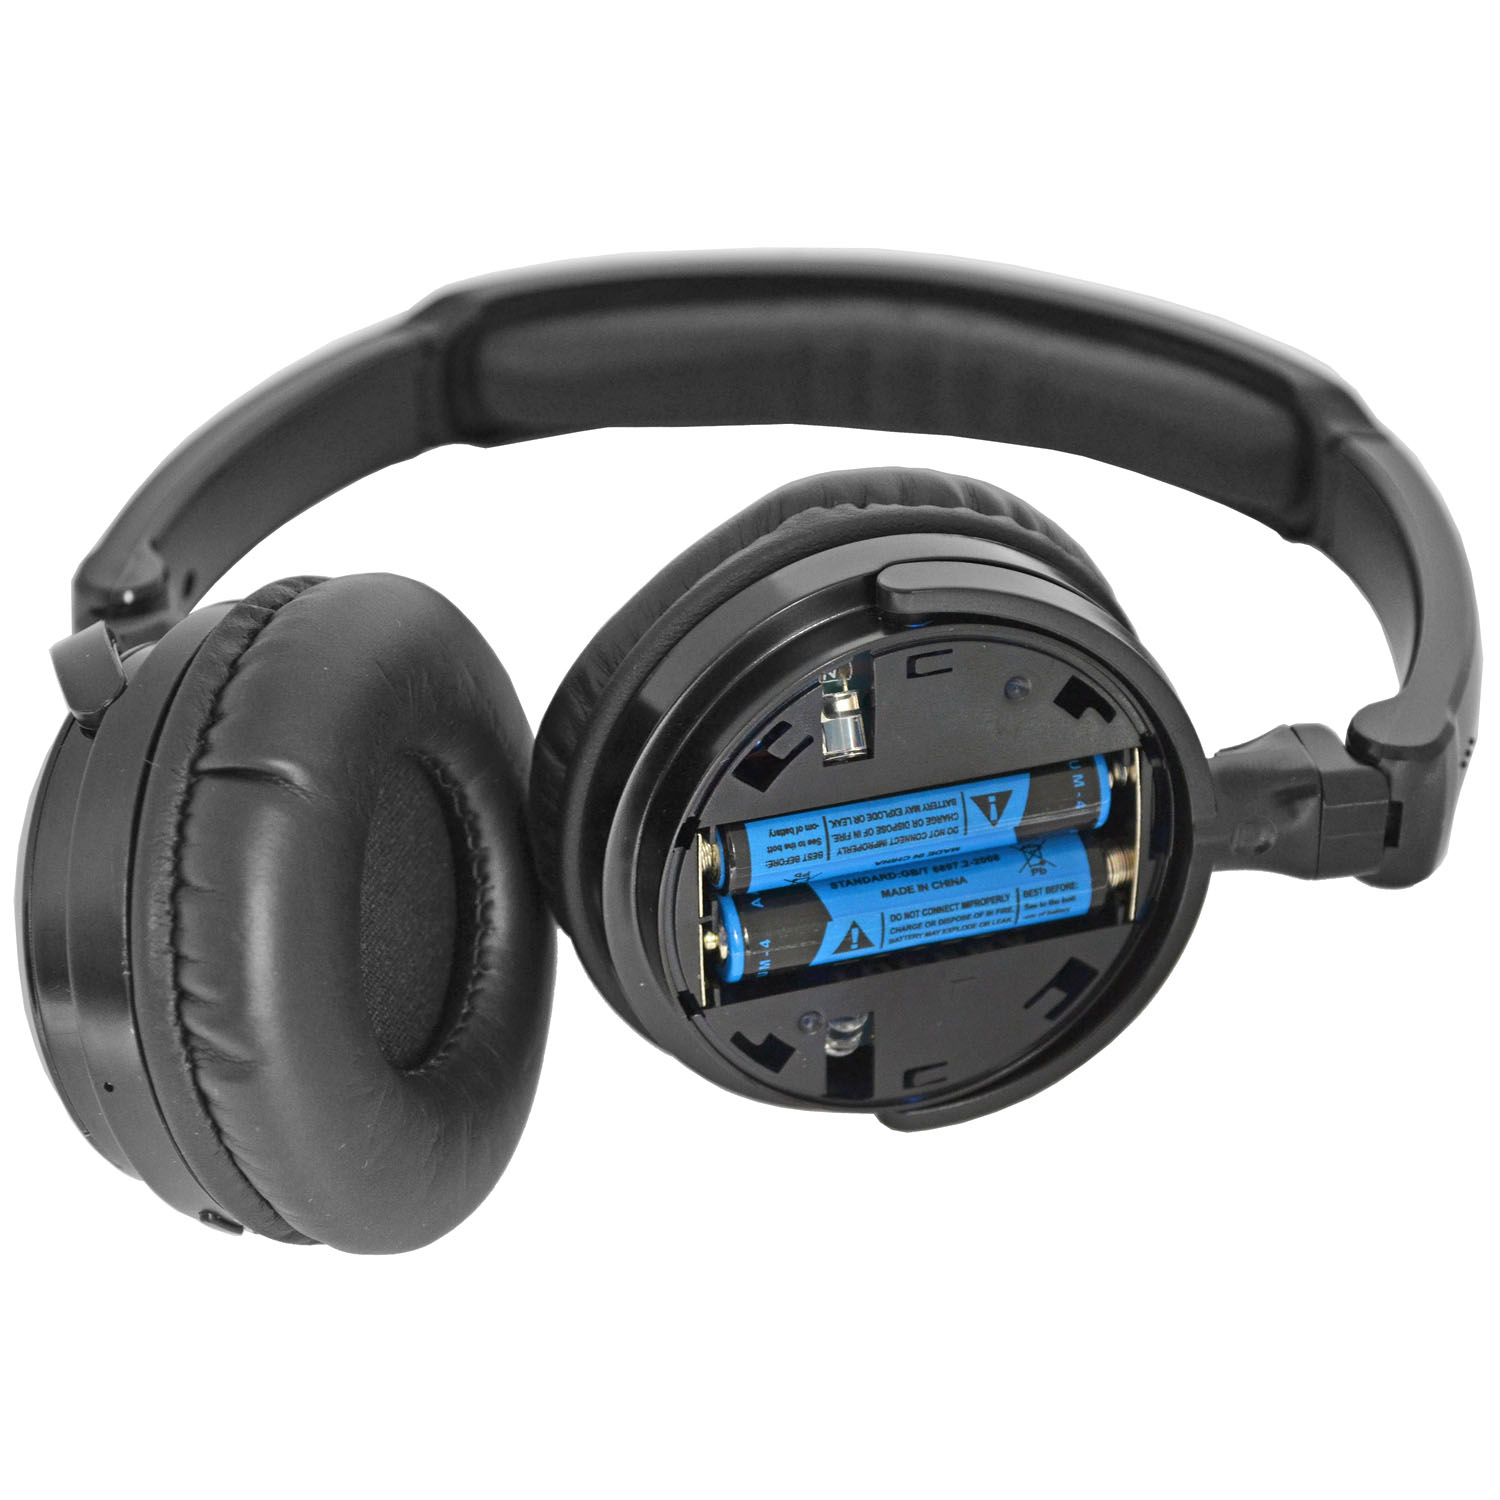 TWO Factory Mercedes Wireless Headphones >Refer to Picture for compatible System